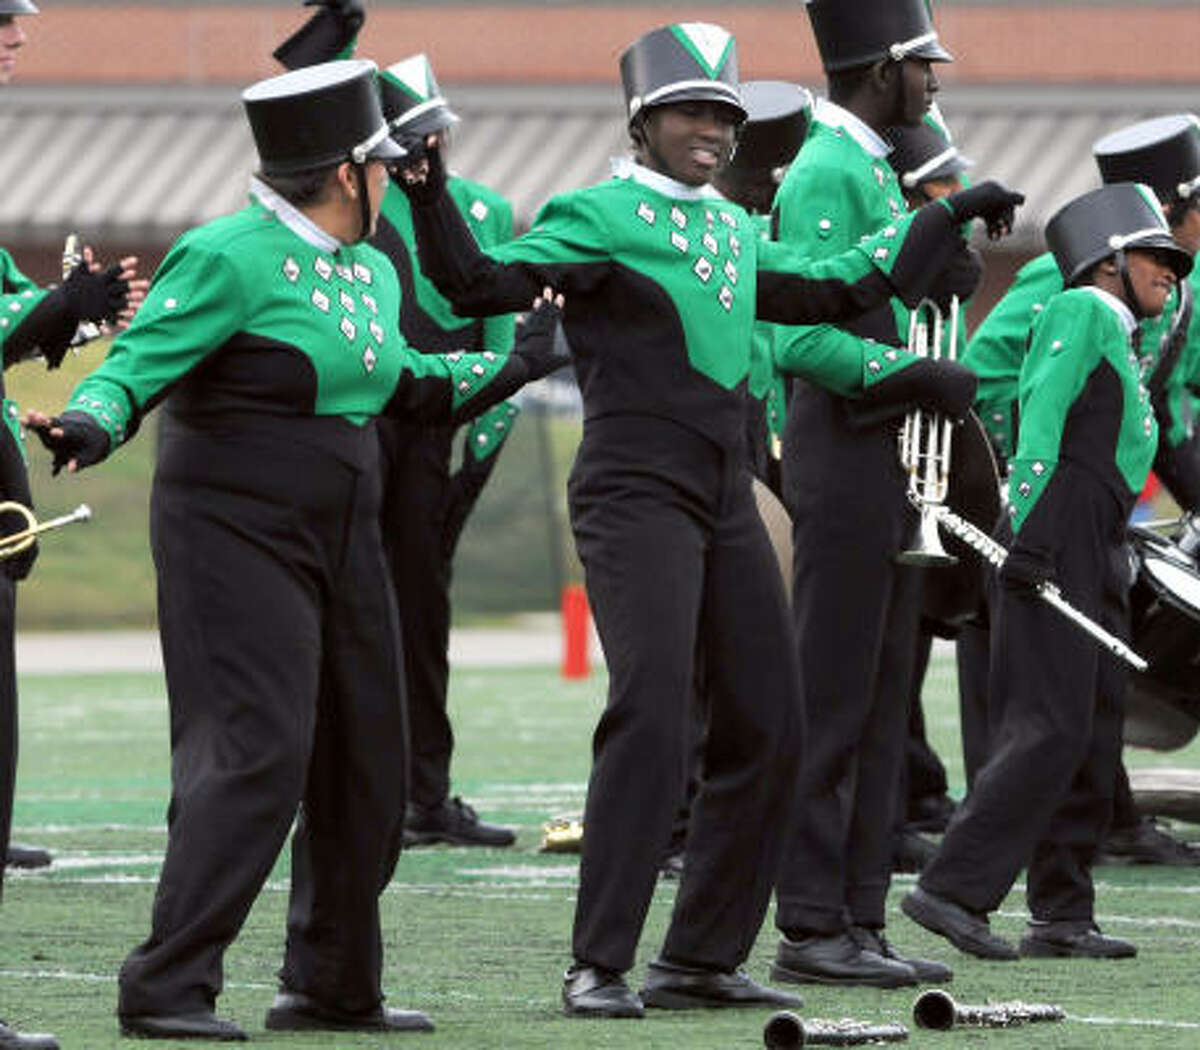 HIGHTOWER 21, WEST BROOK 26: Hightower band members dance during their halftime performance at the playoff game against Beaumont West Brook at Galena Park.